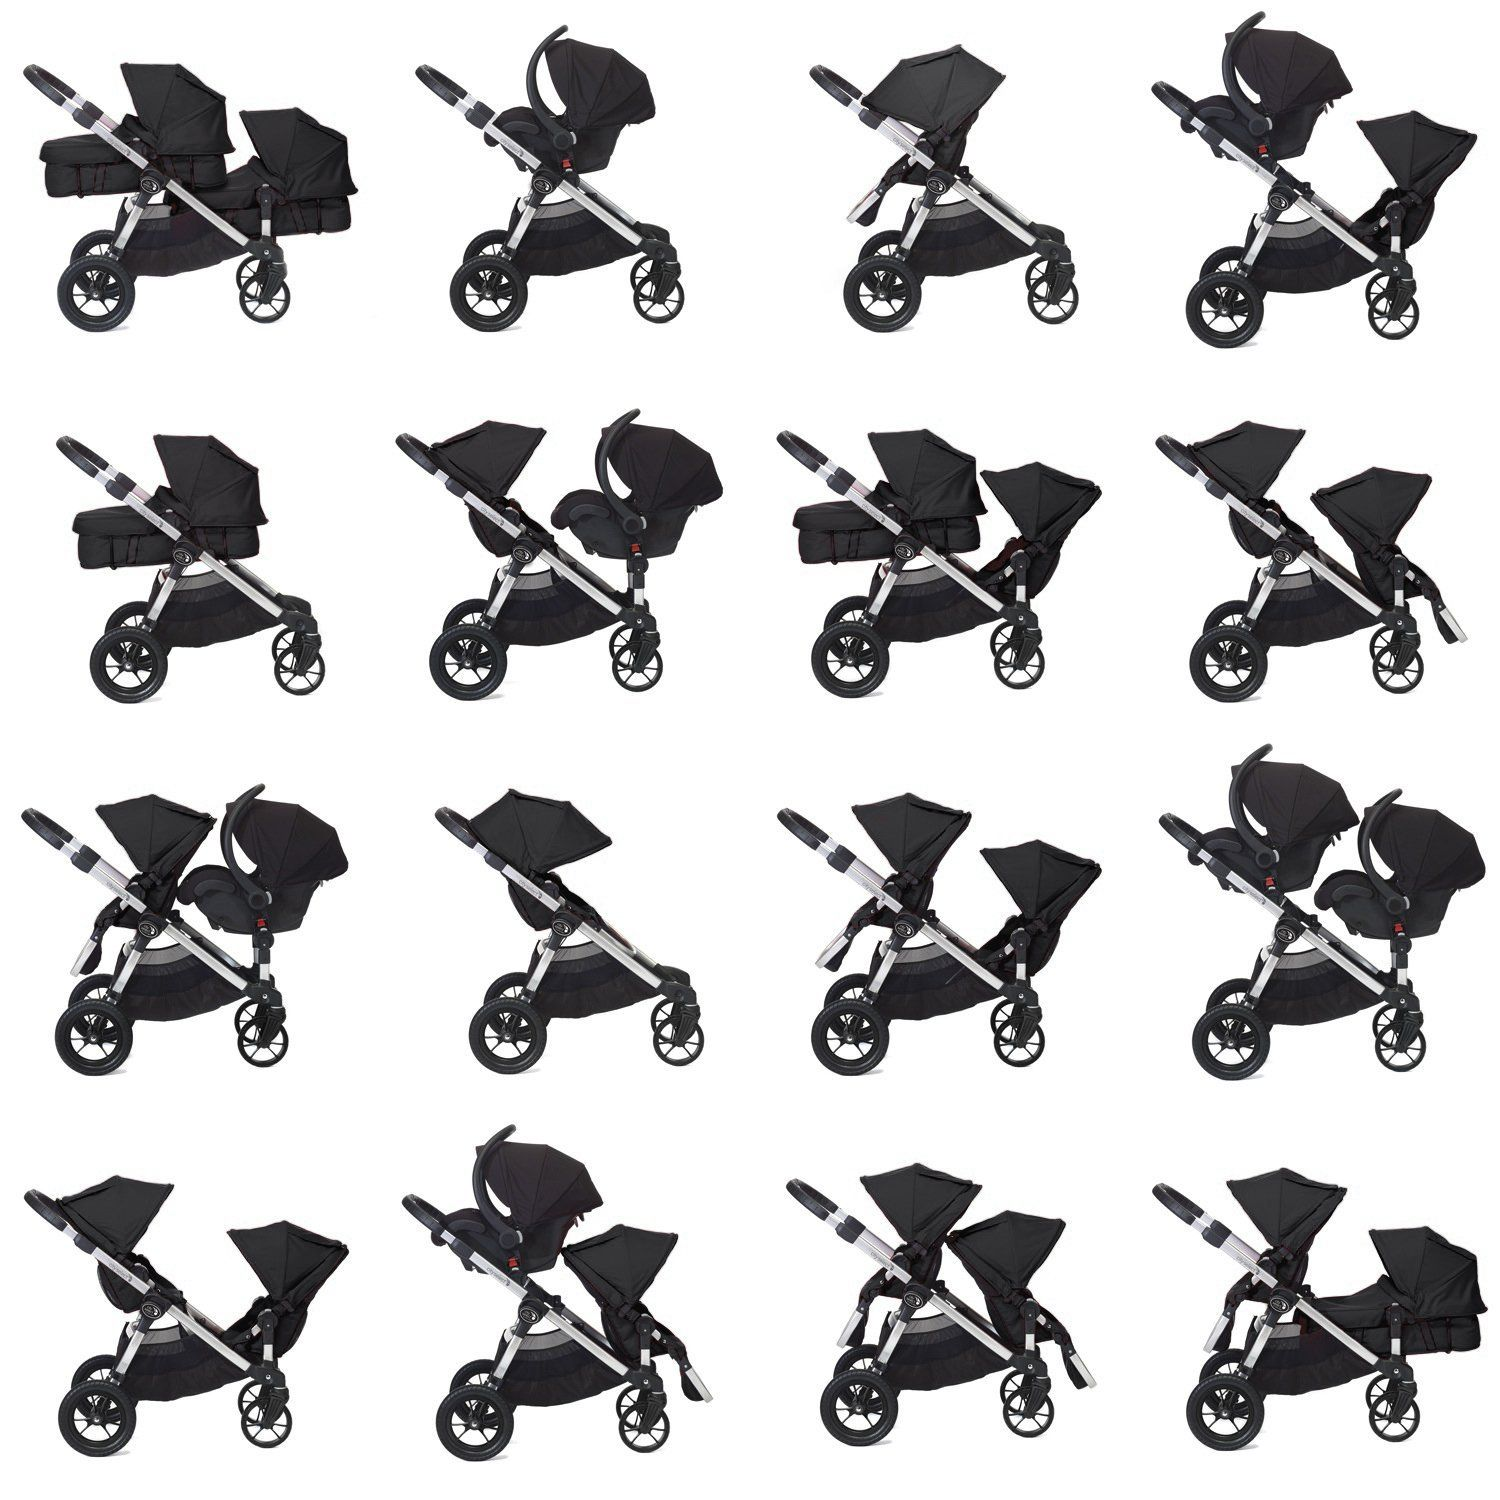 Amazon Com Baby Jogger City Select Stroller In Amethyst Tandem Strollers Baby Baby Jogger City Select City Select Double Stroller Double Strollers